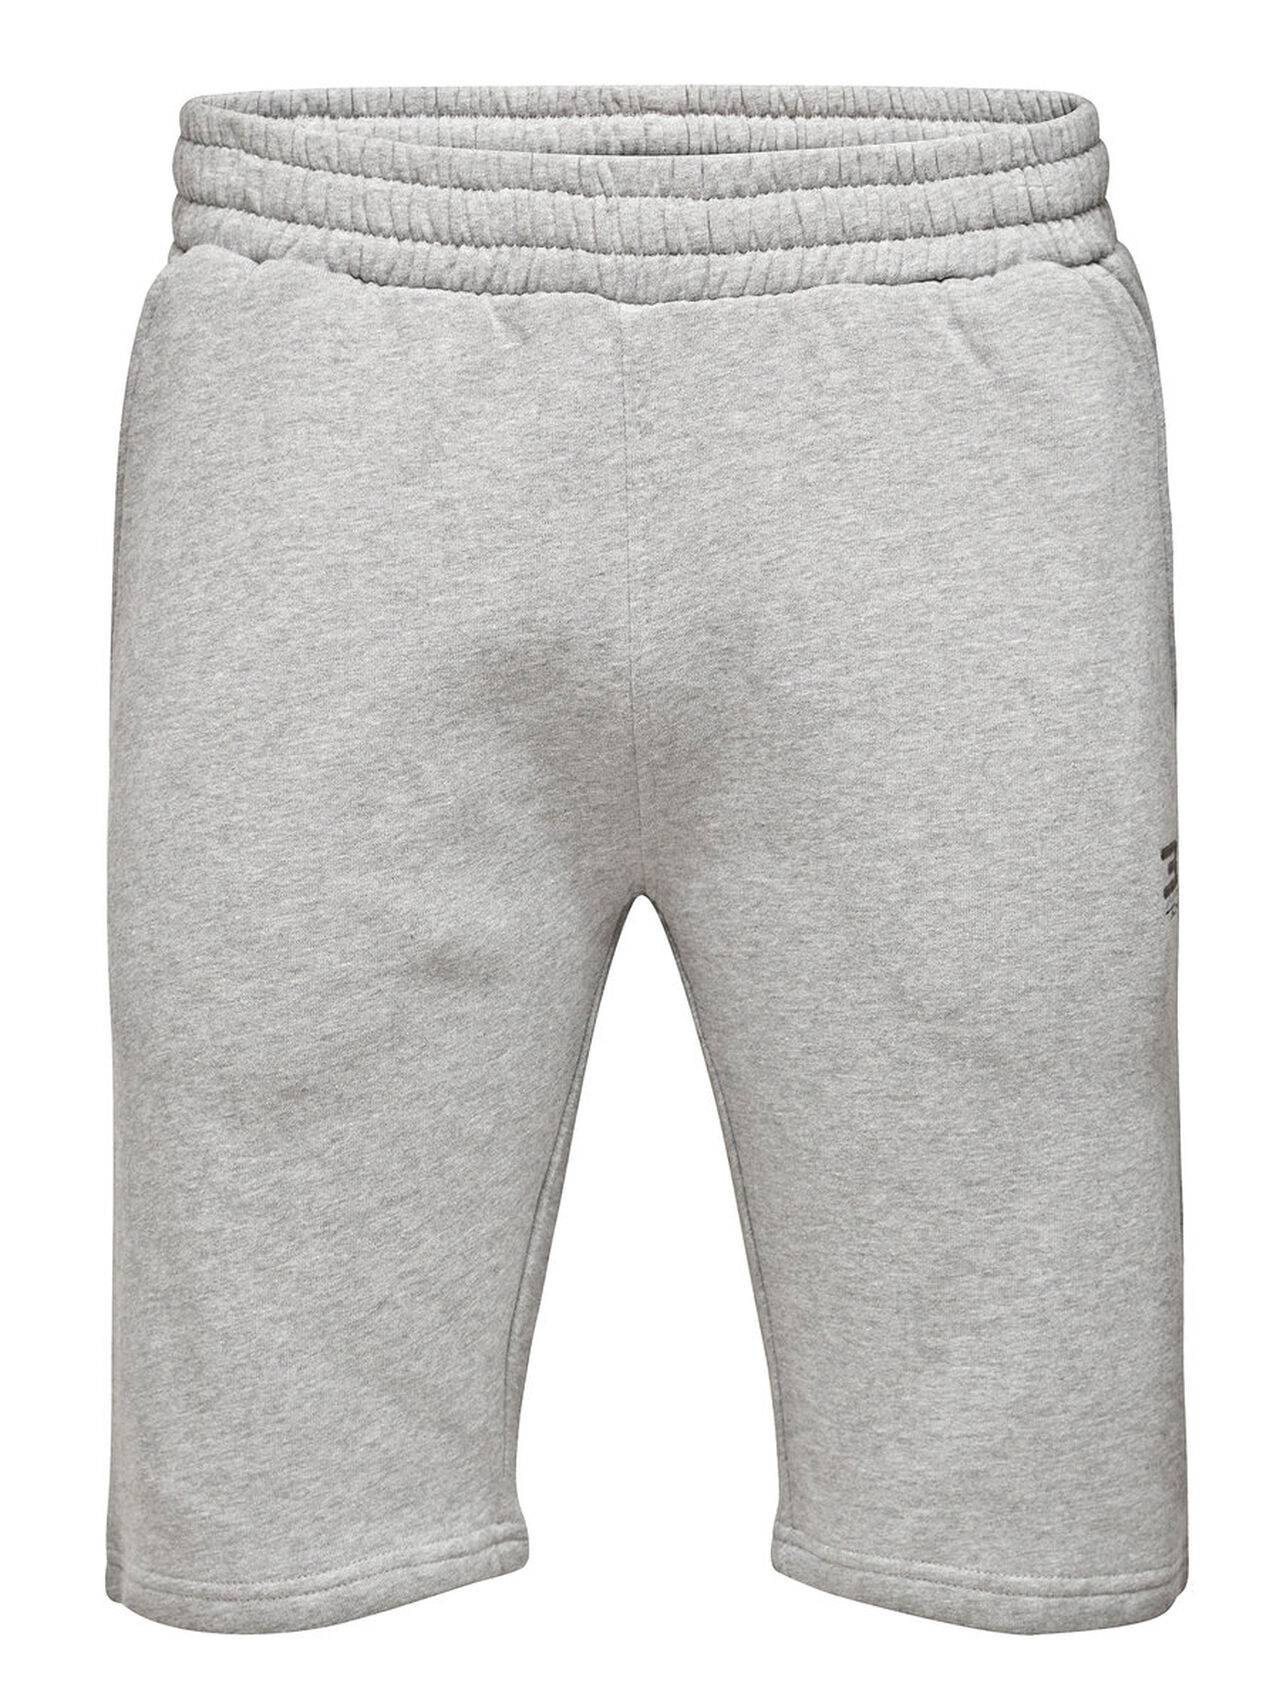 JACK & JONES Sports Sweat Shorts Men Grey LightGreyMelange